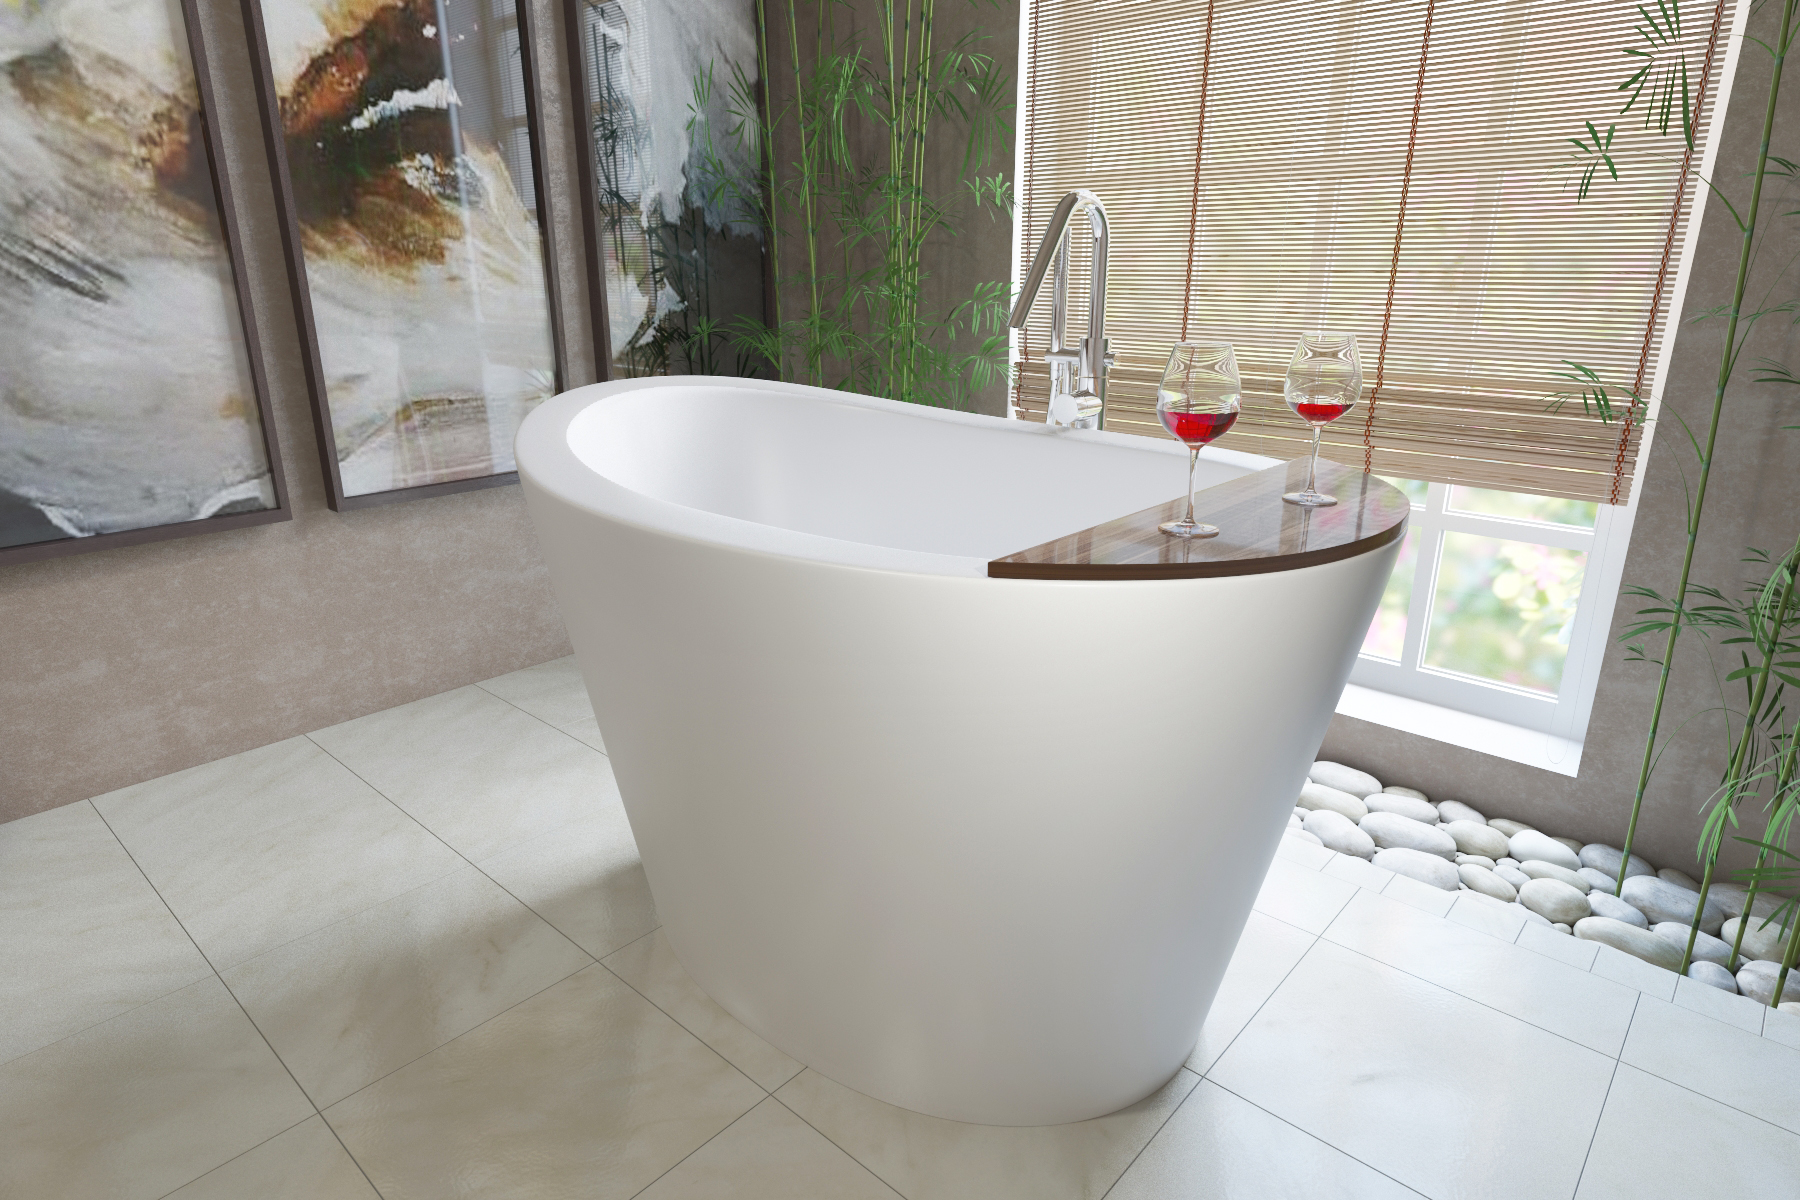 aquatica true ofuro freestanding stone japanese soaking bathtub -